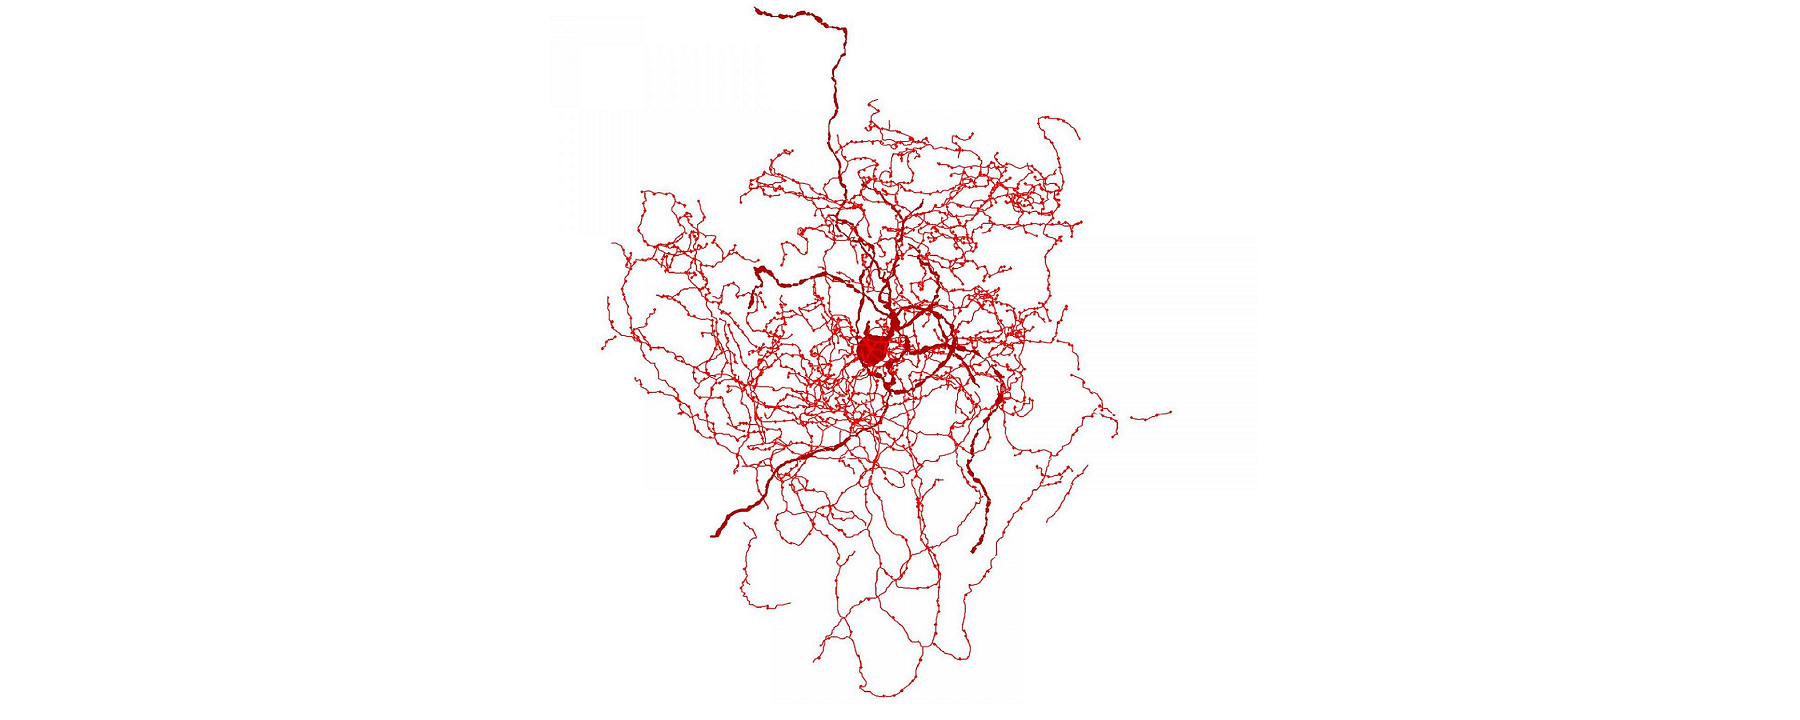 New Cell Type Discovered in Human Brains